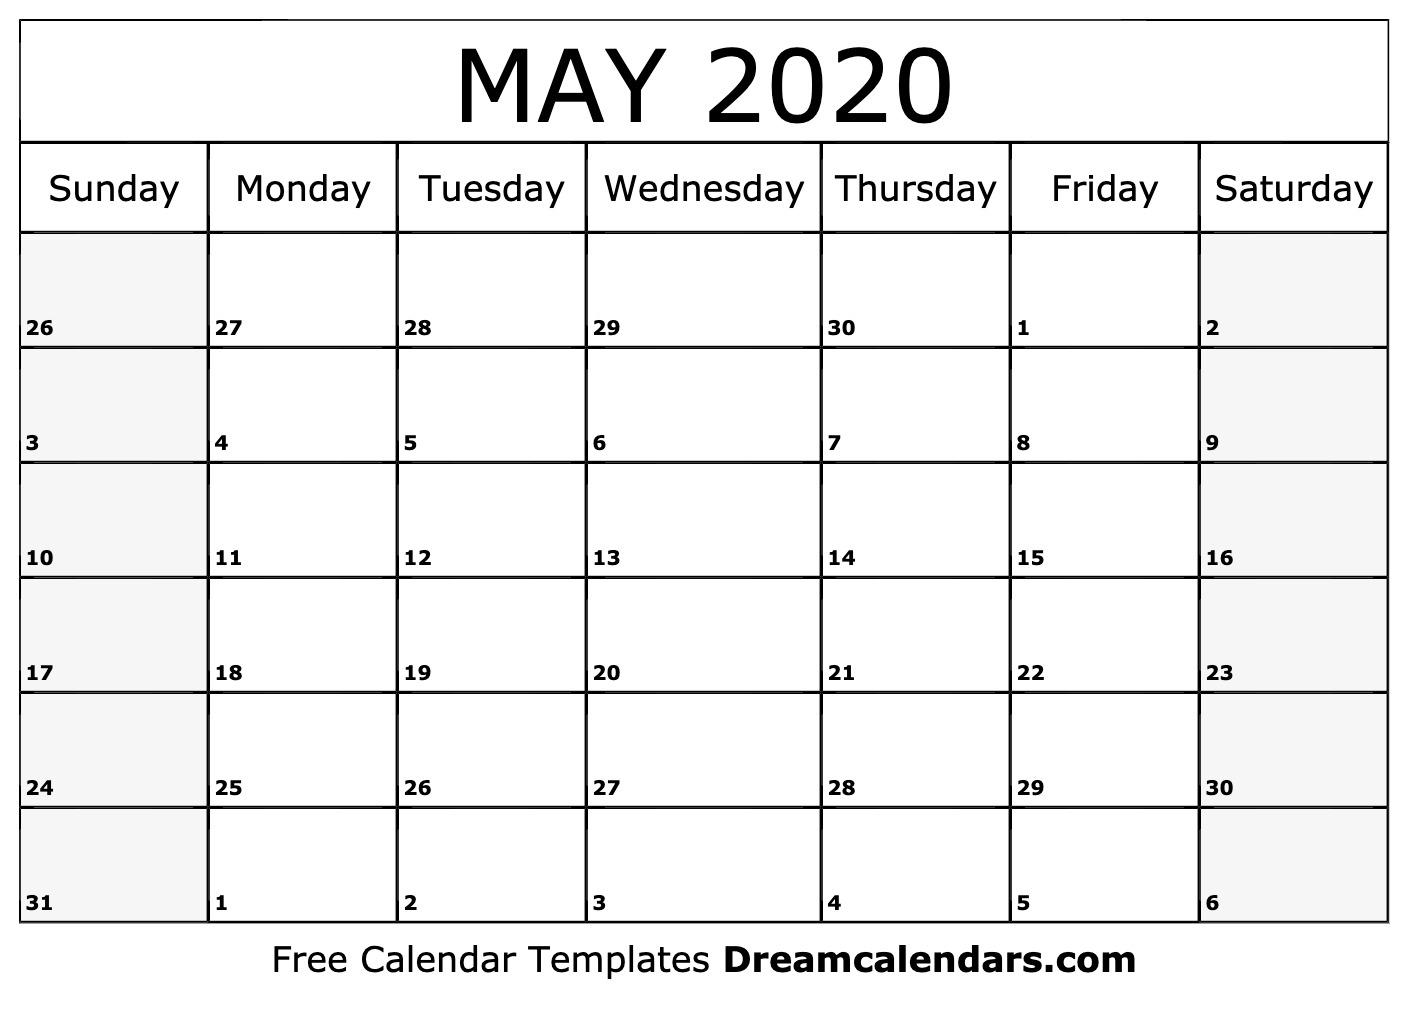 2020 May Printable Calendar - Tunu.redmini.co